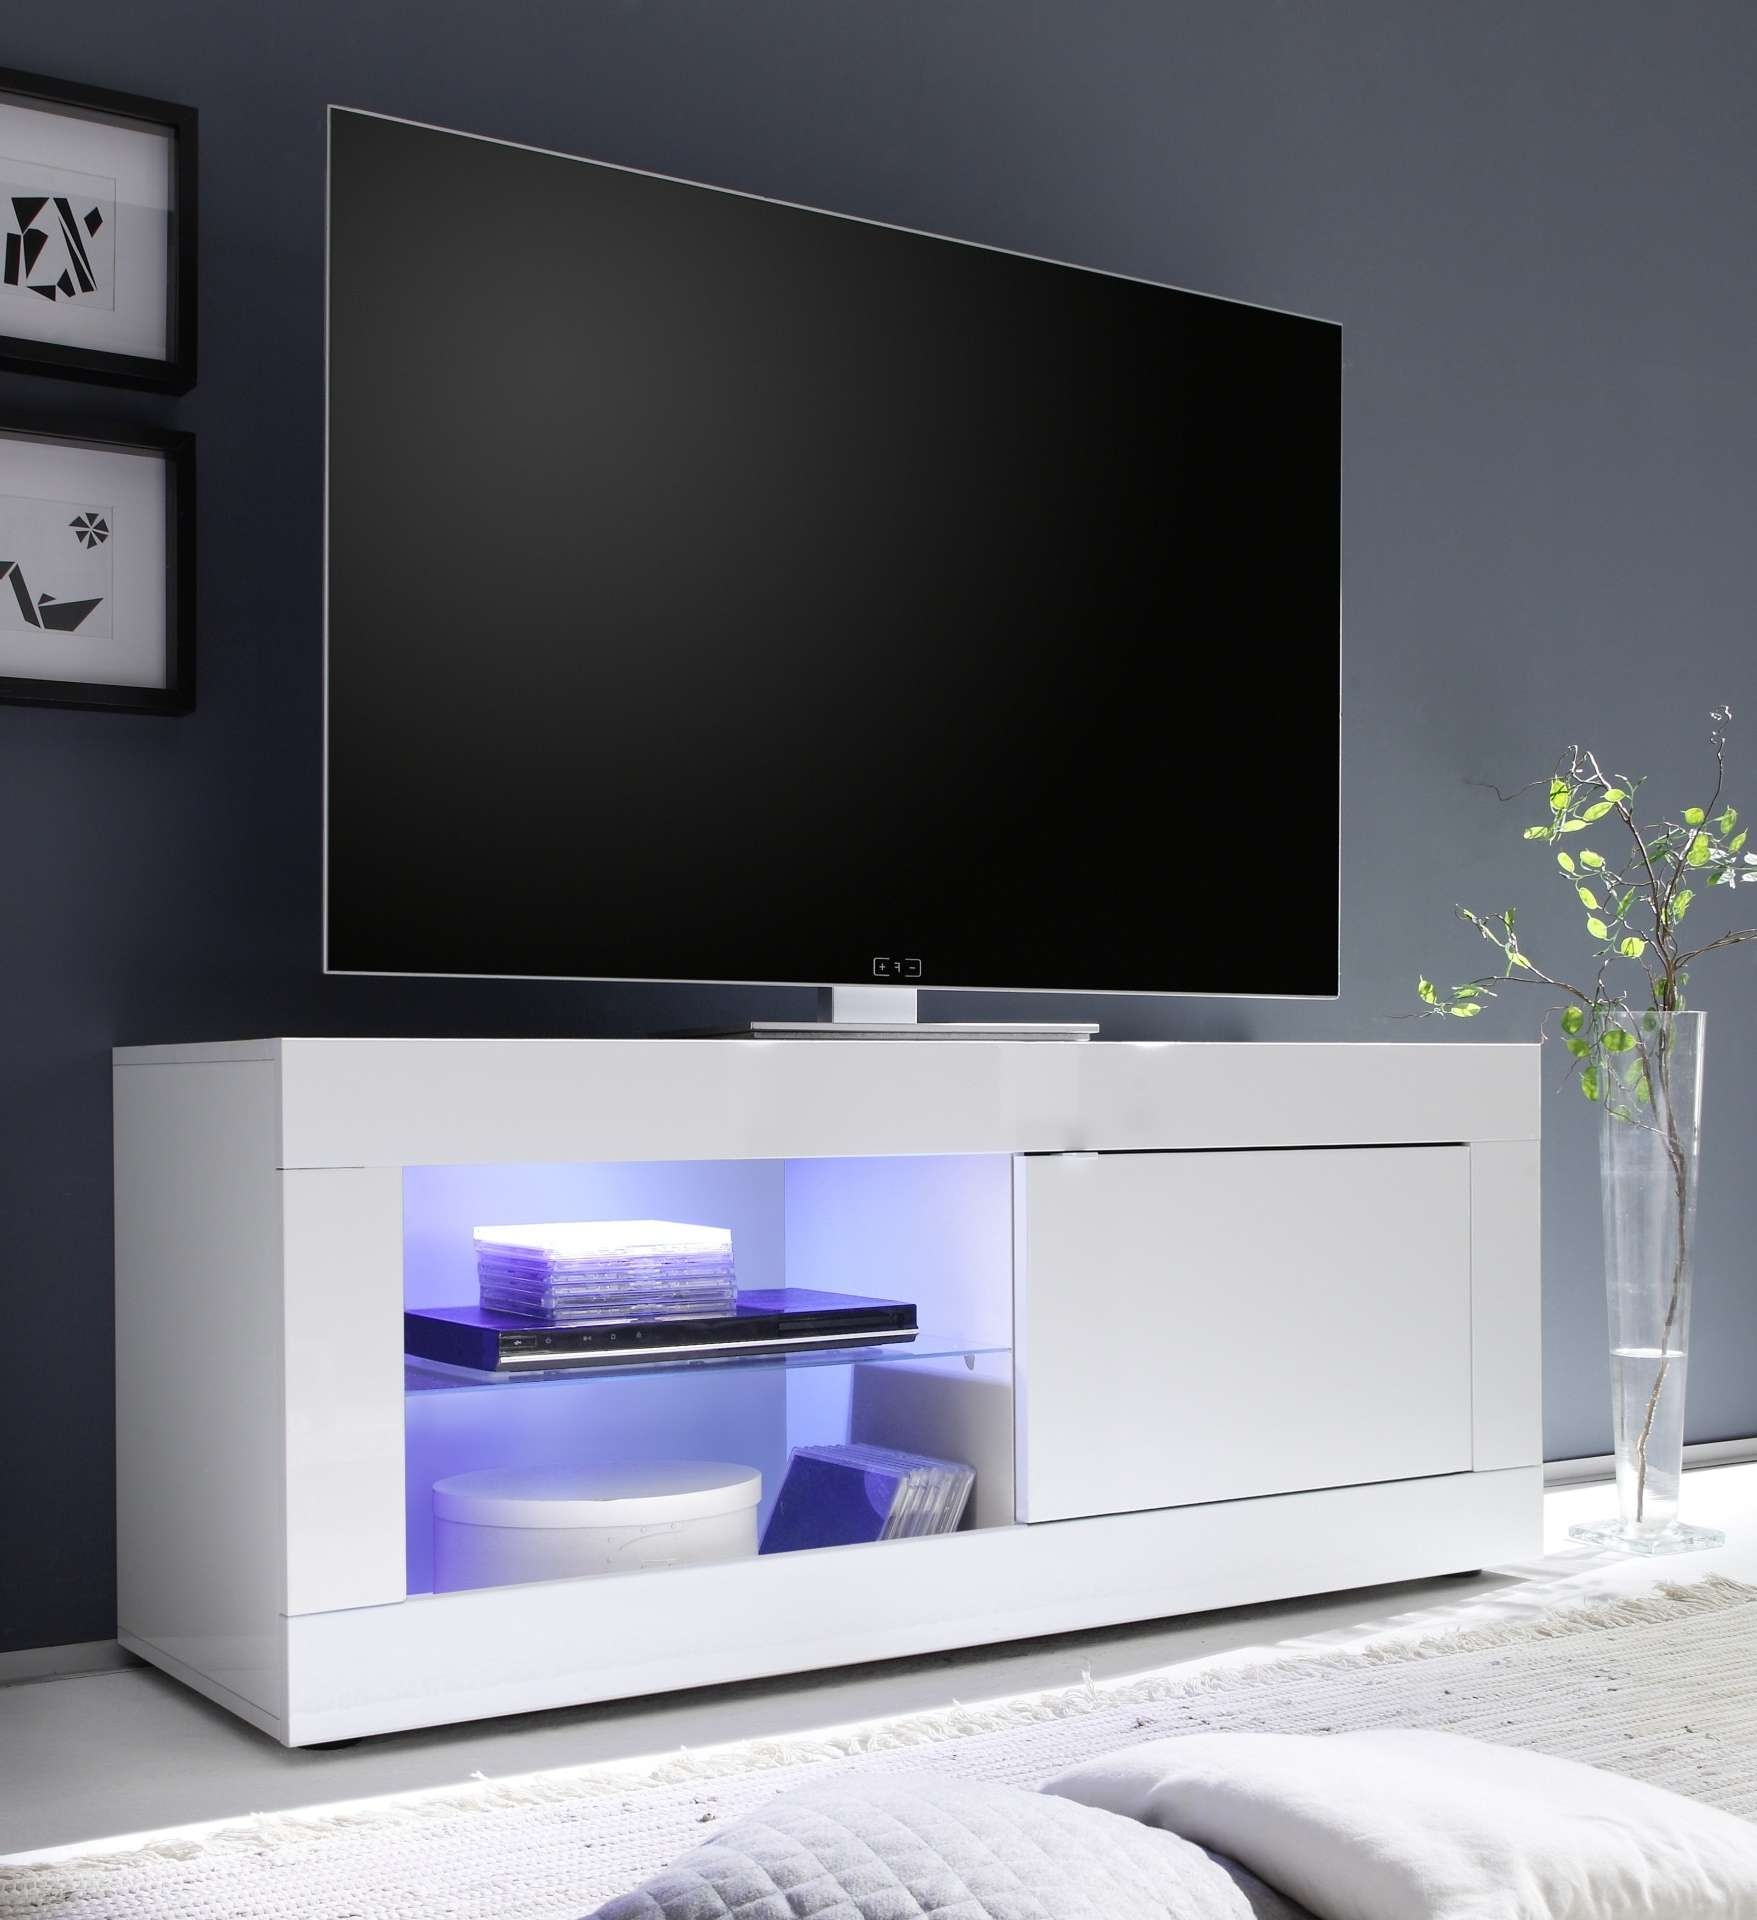 Contact Us – Sena Home Furniture Regarding High Gloss White Tv Cabinets (View 2 of 20)